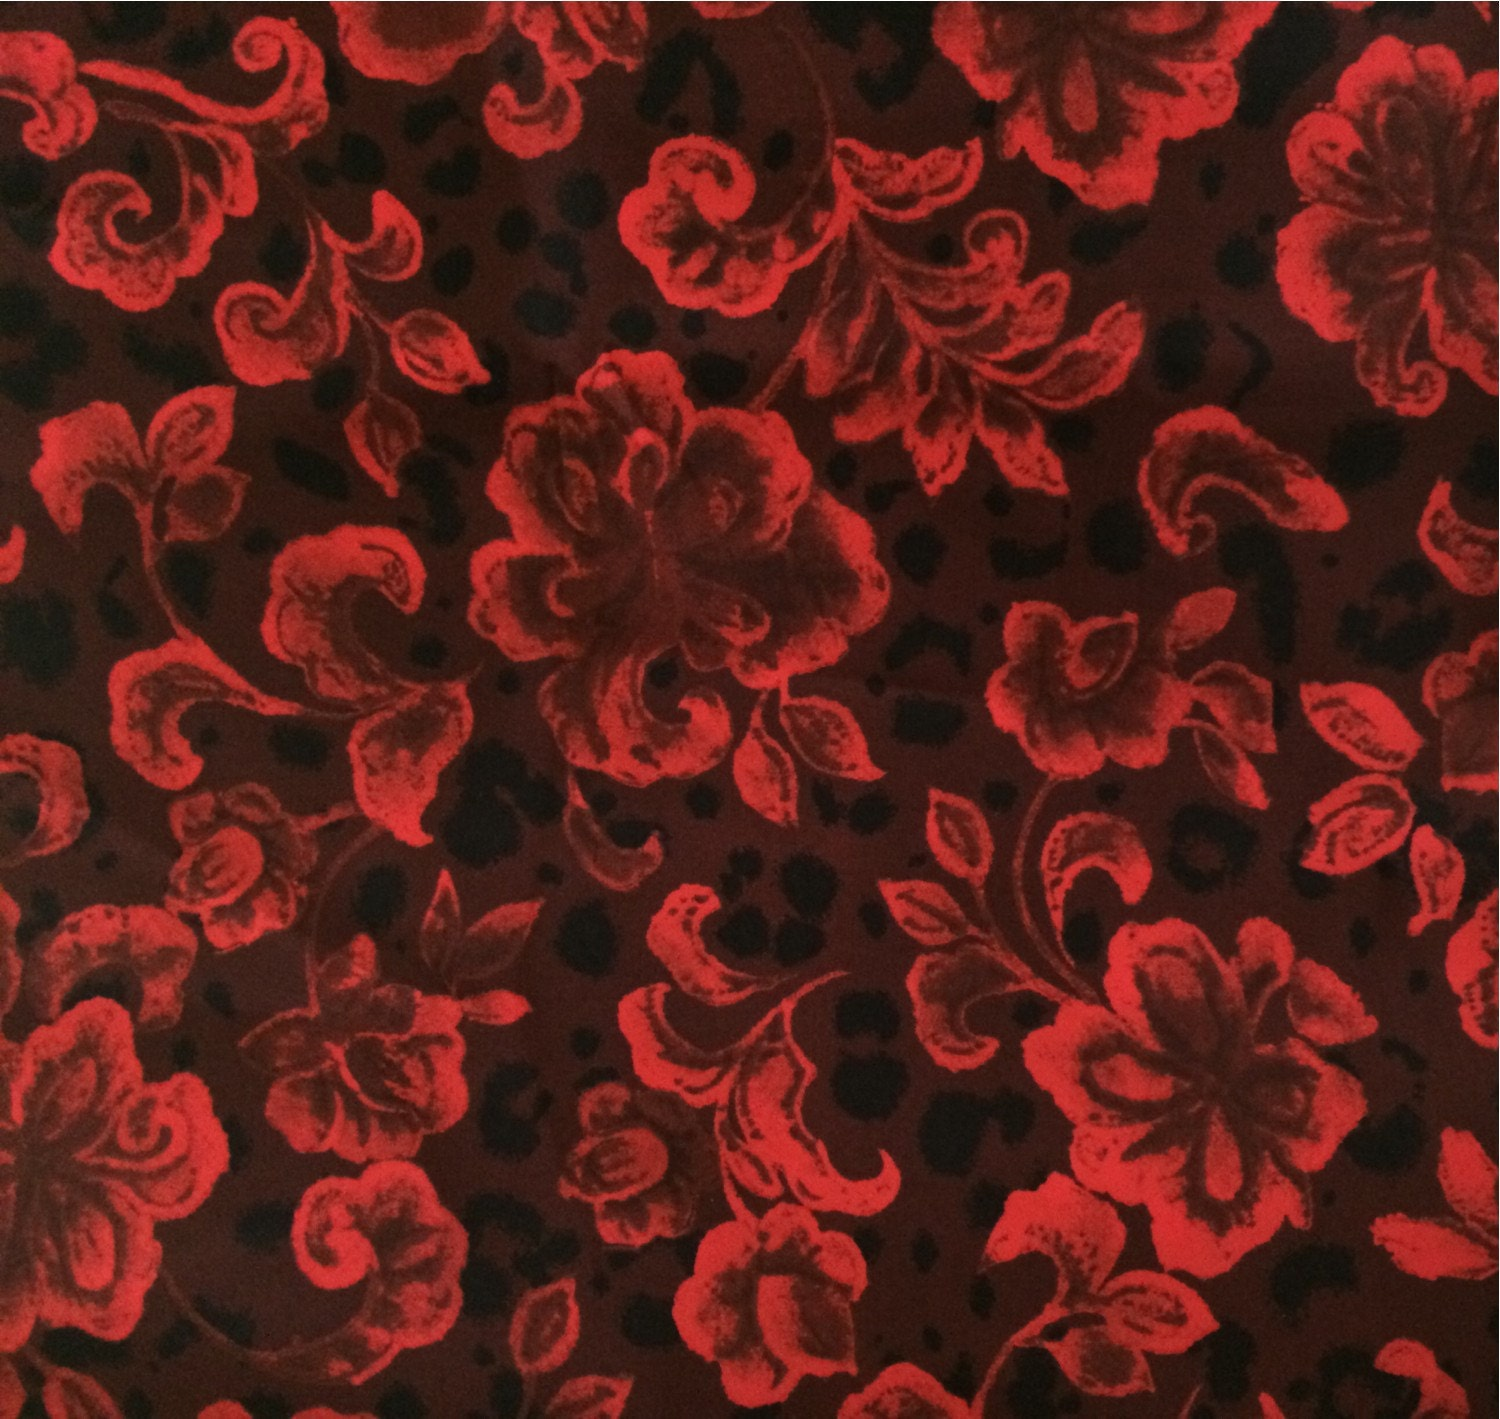 Red and Black Floral Polyester Fabric 4 Yards